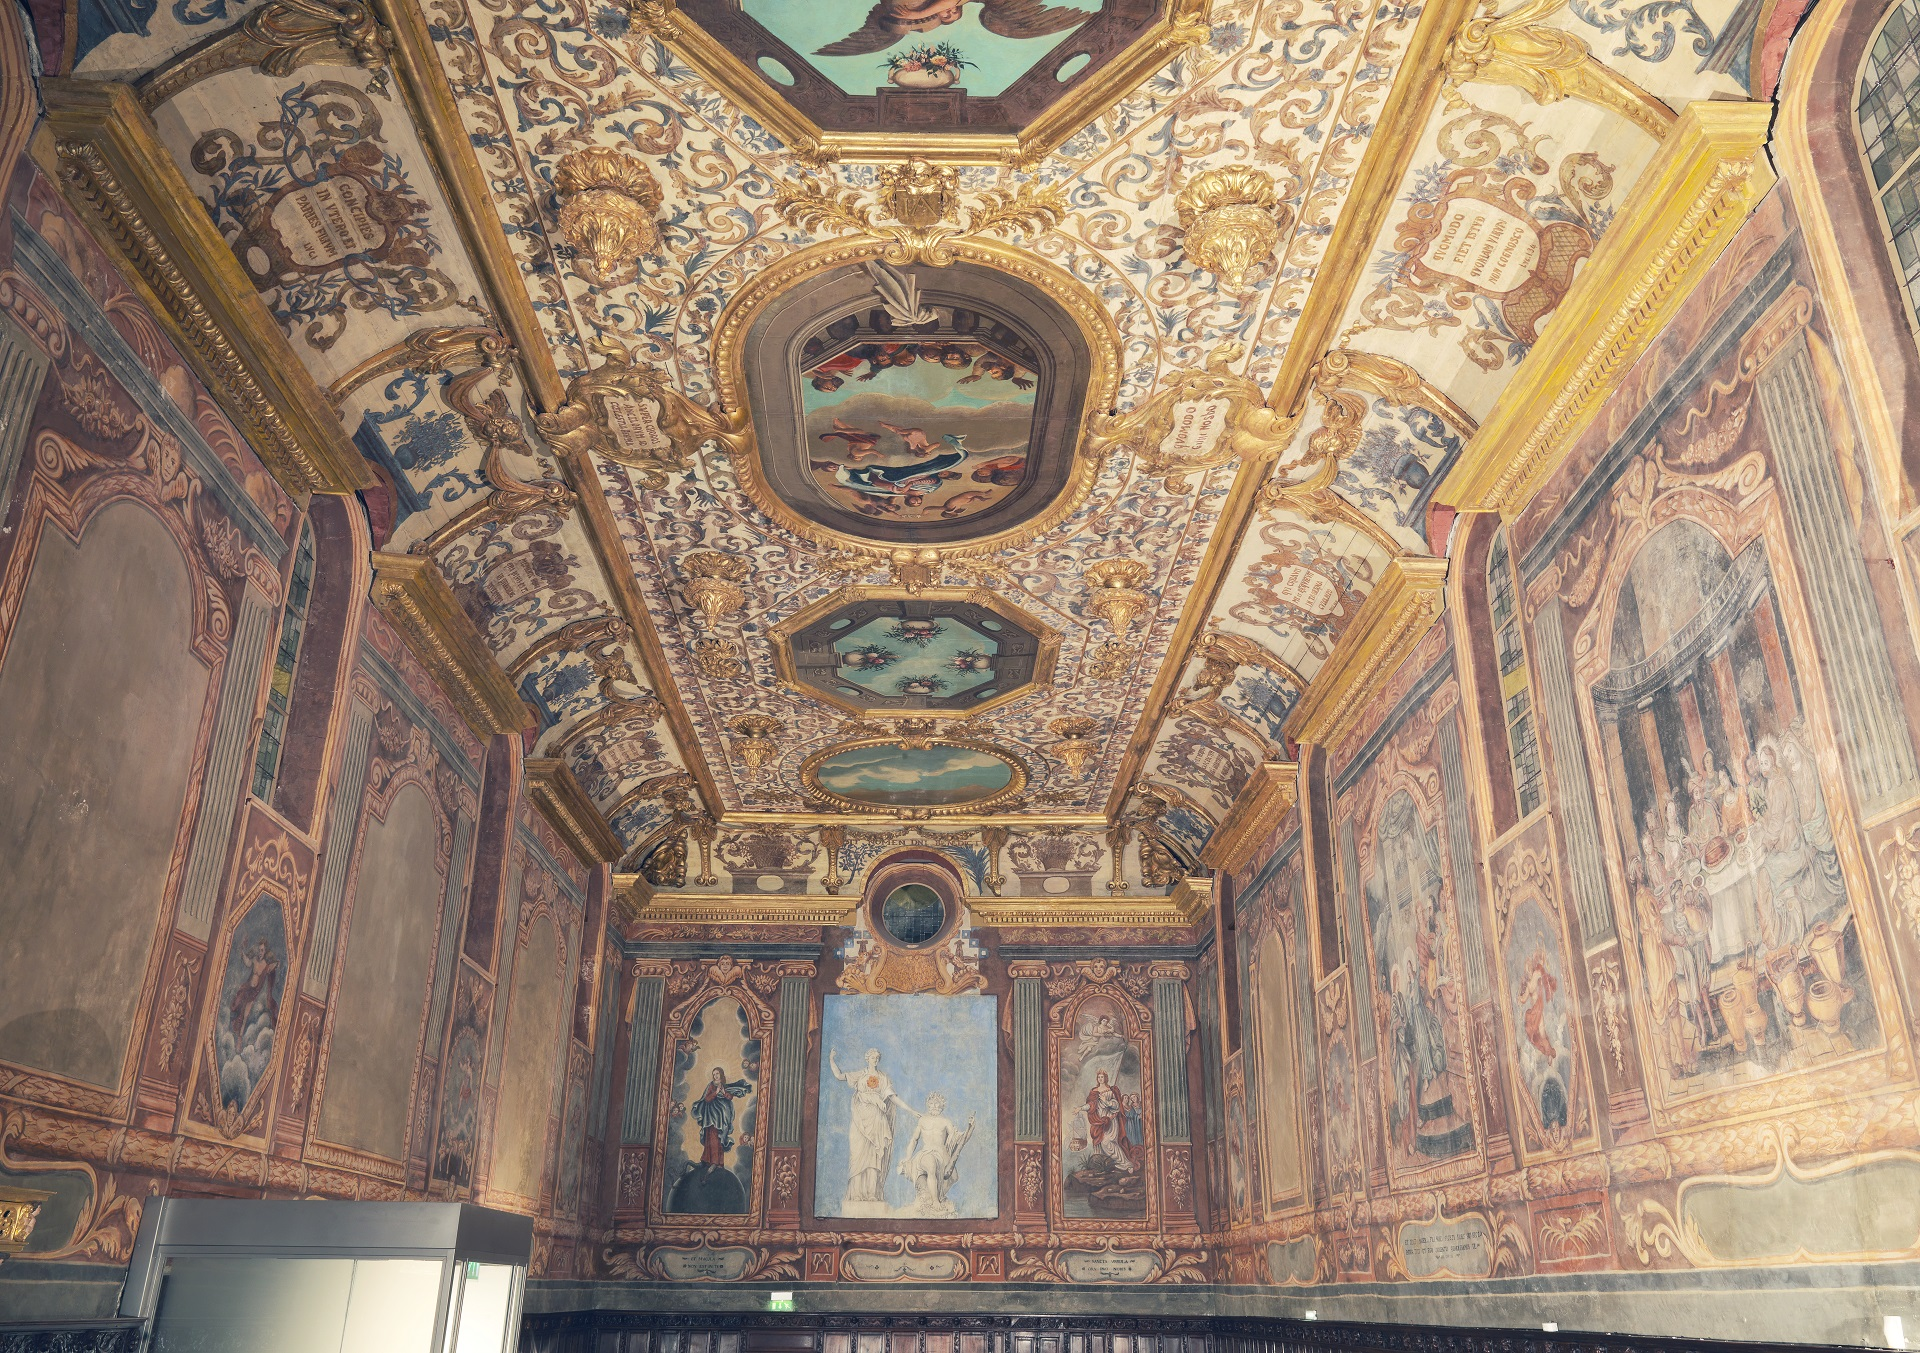 Painting ceiling of the Annonciade chapel